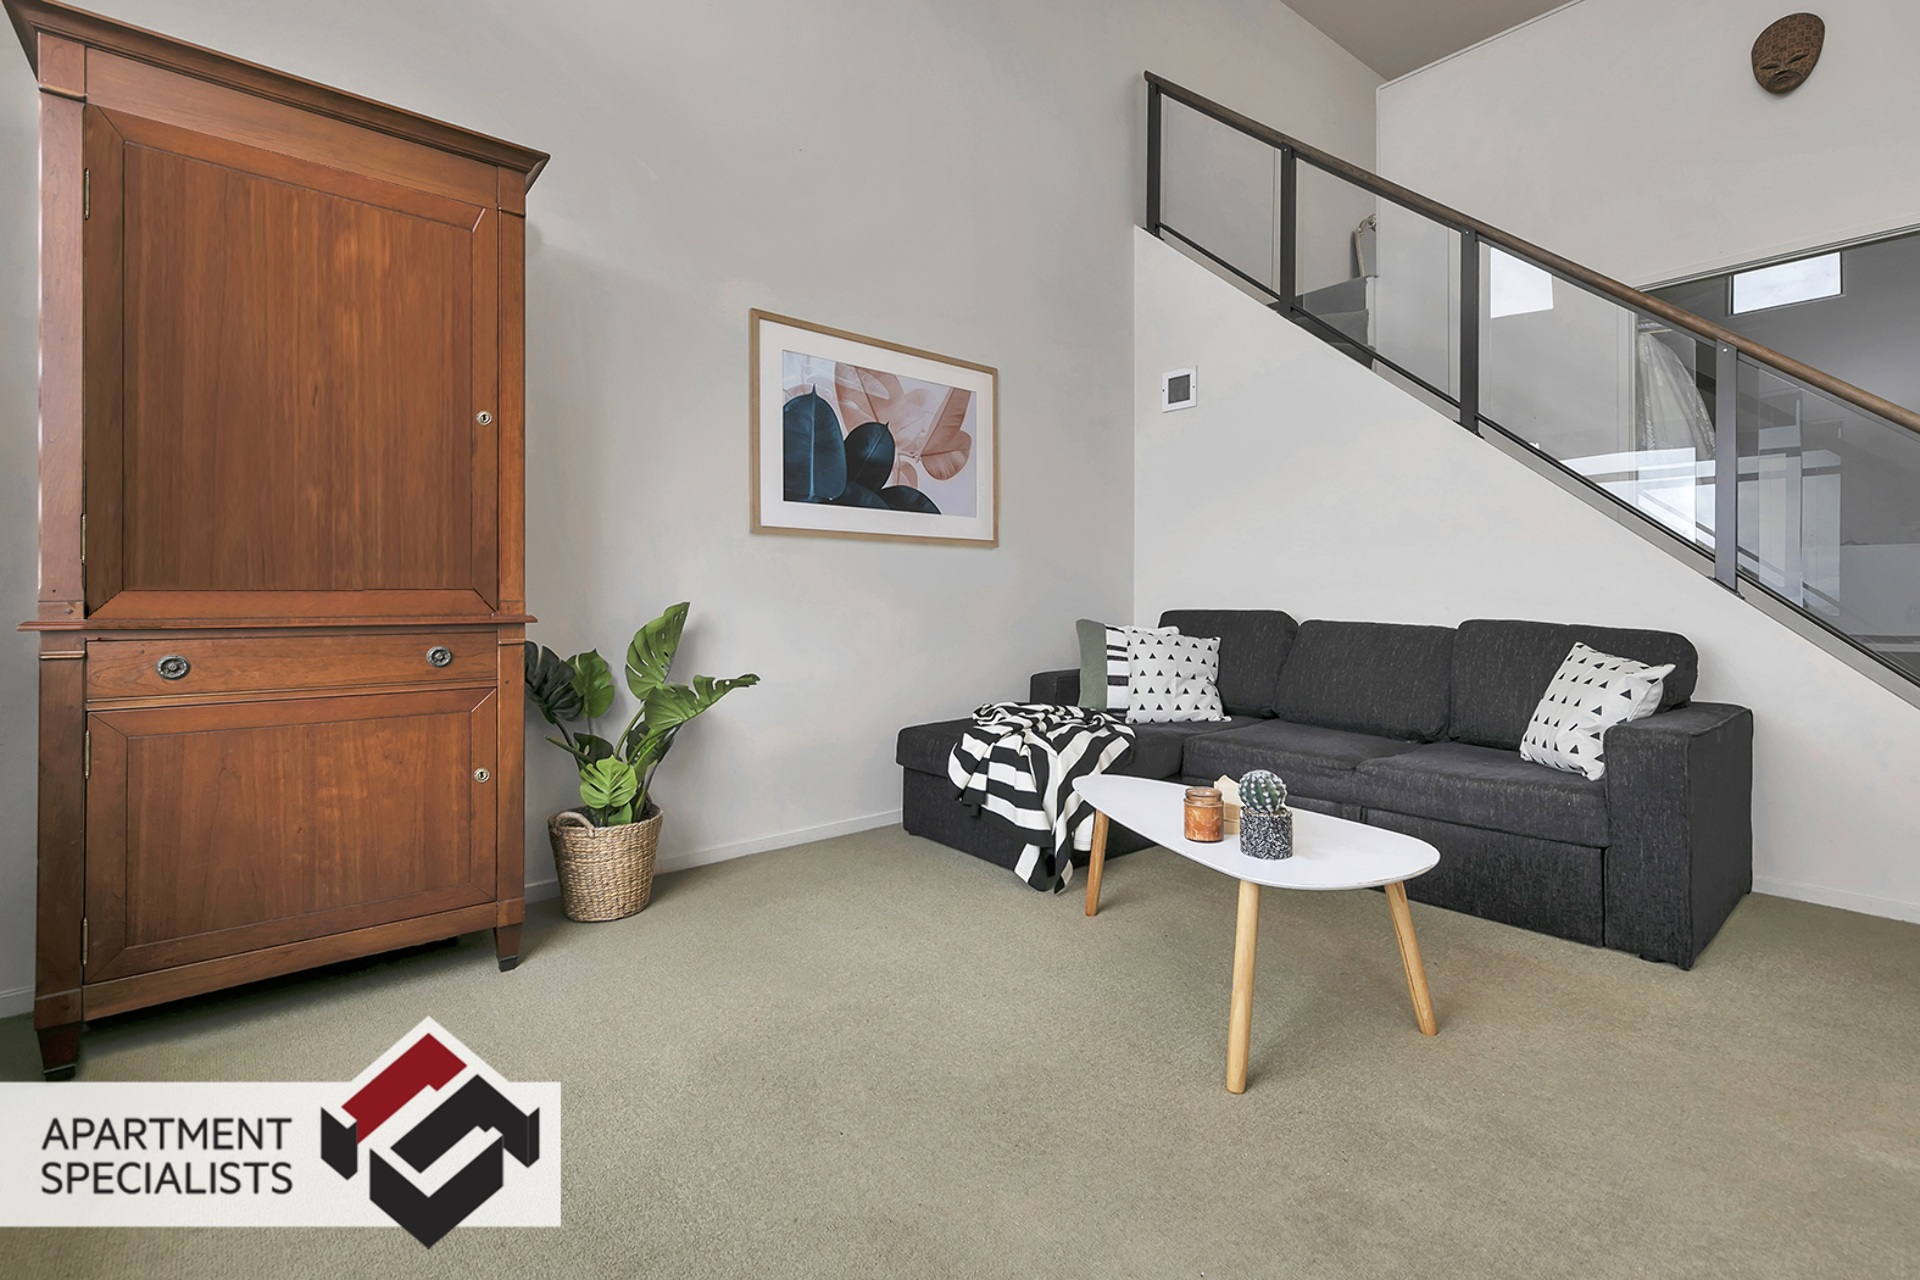 6 | 5 Charlotte Street, Eden Terrace | Apartment Specialists